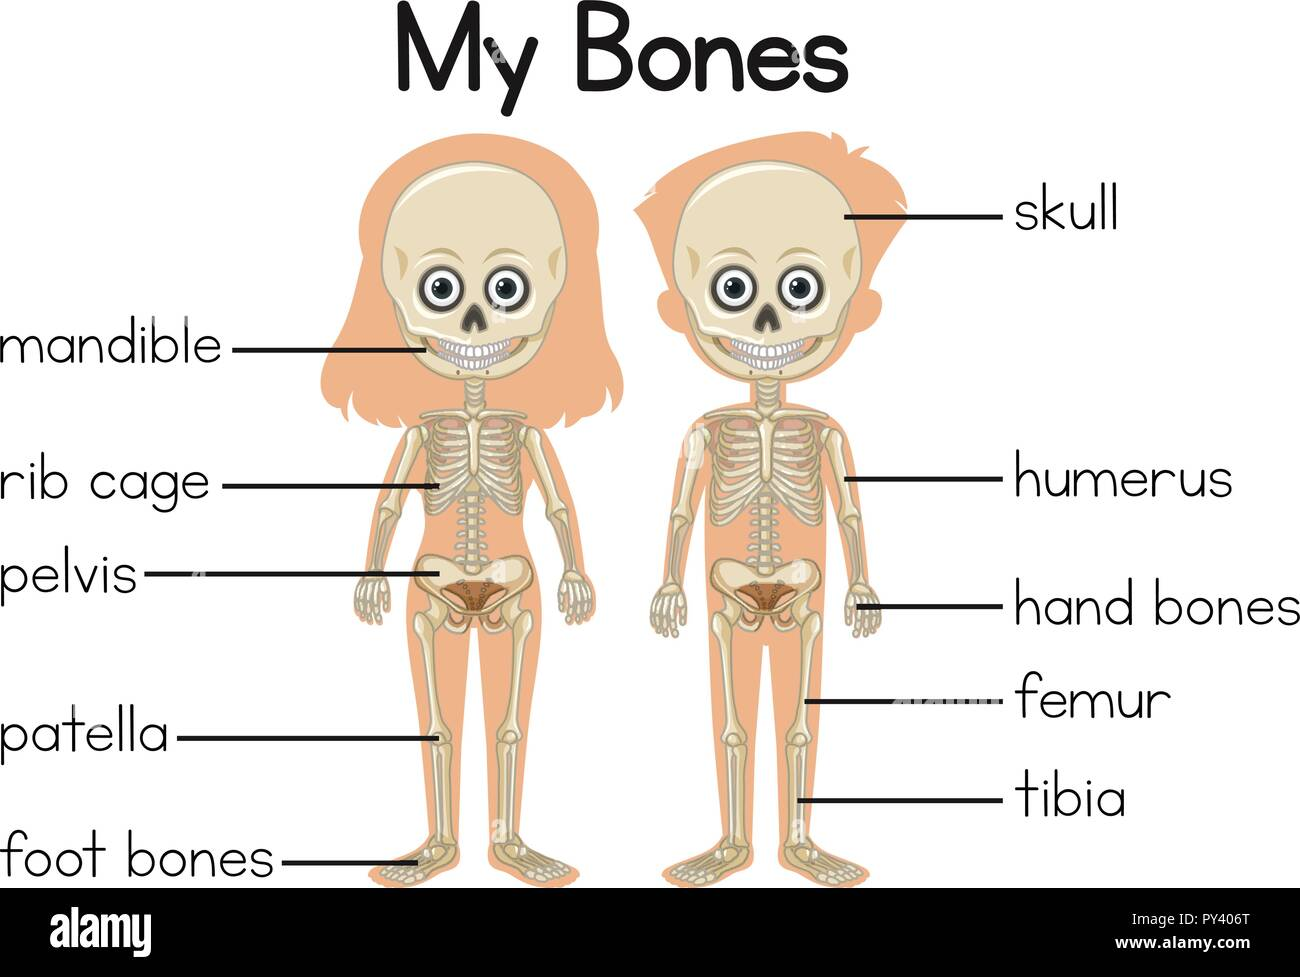 hight resolution of my bones diagram with two children illustration stock vector